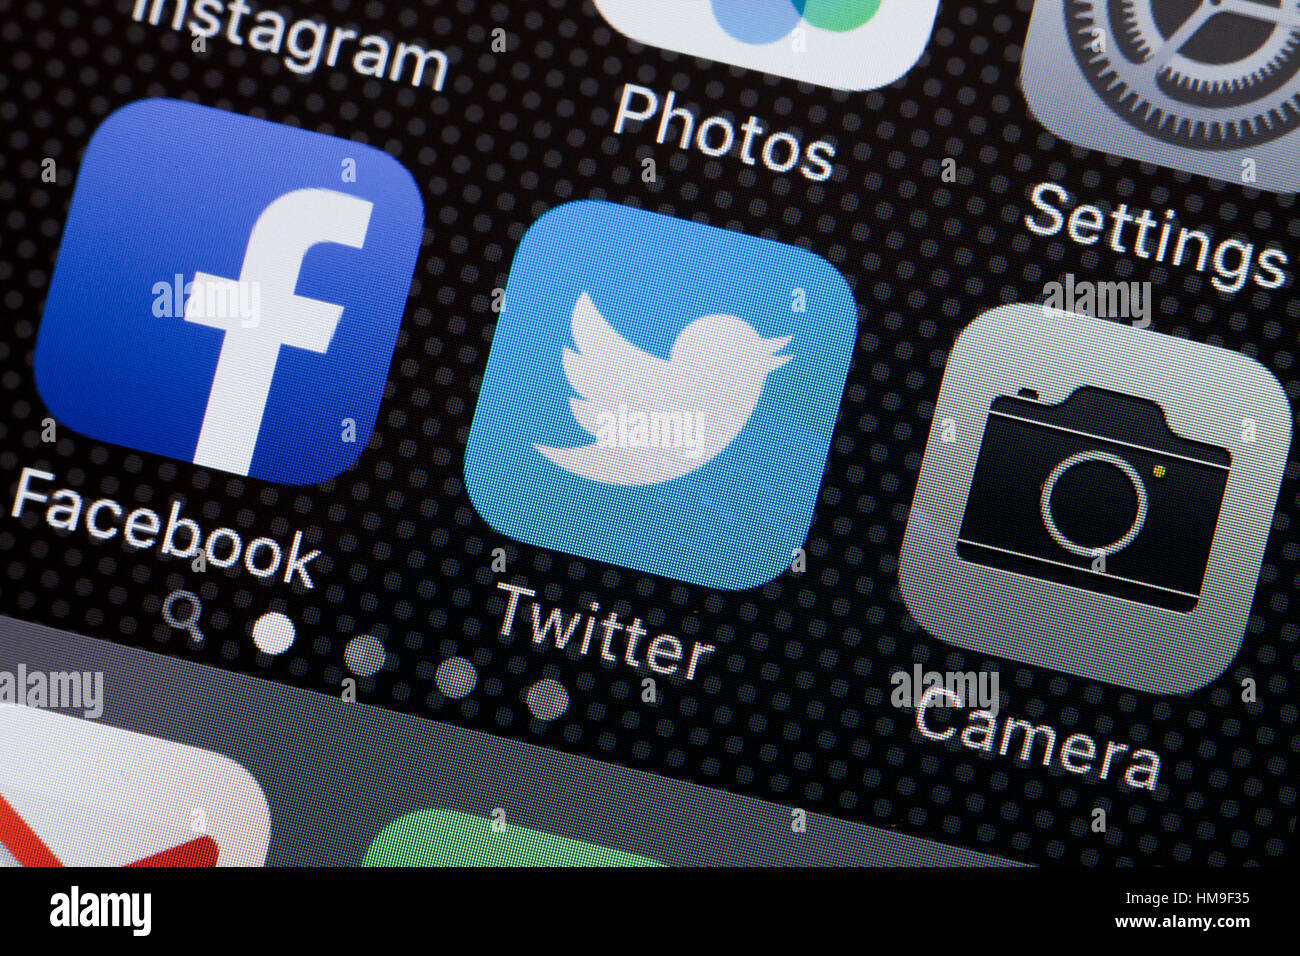 Twitter app icon on iPhone screen - USA - Stock Image